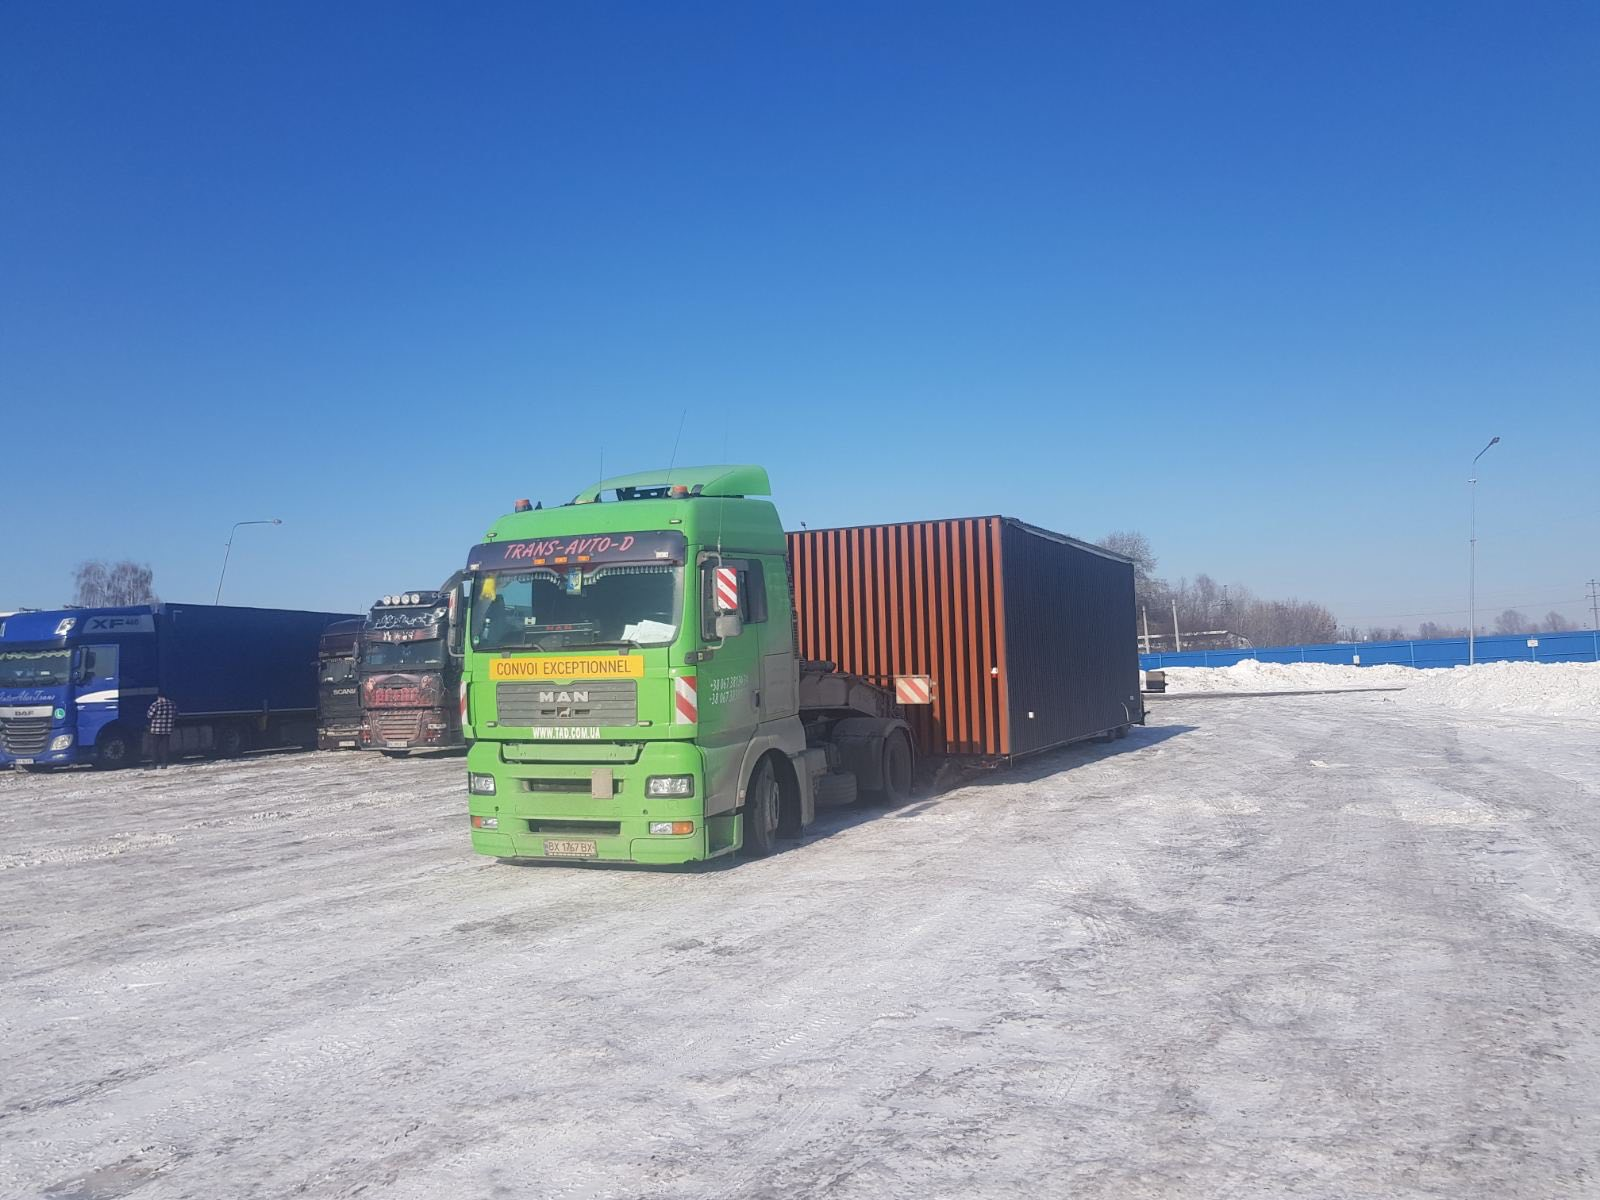 Transportation of the container